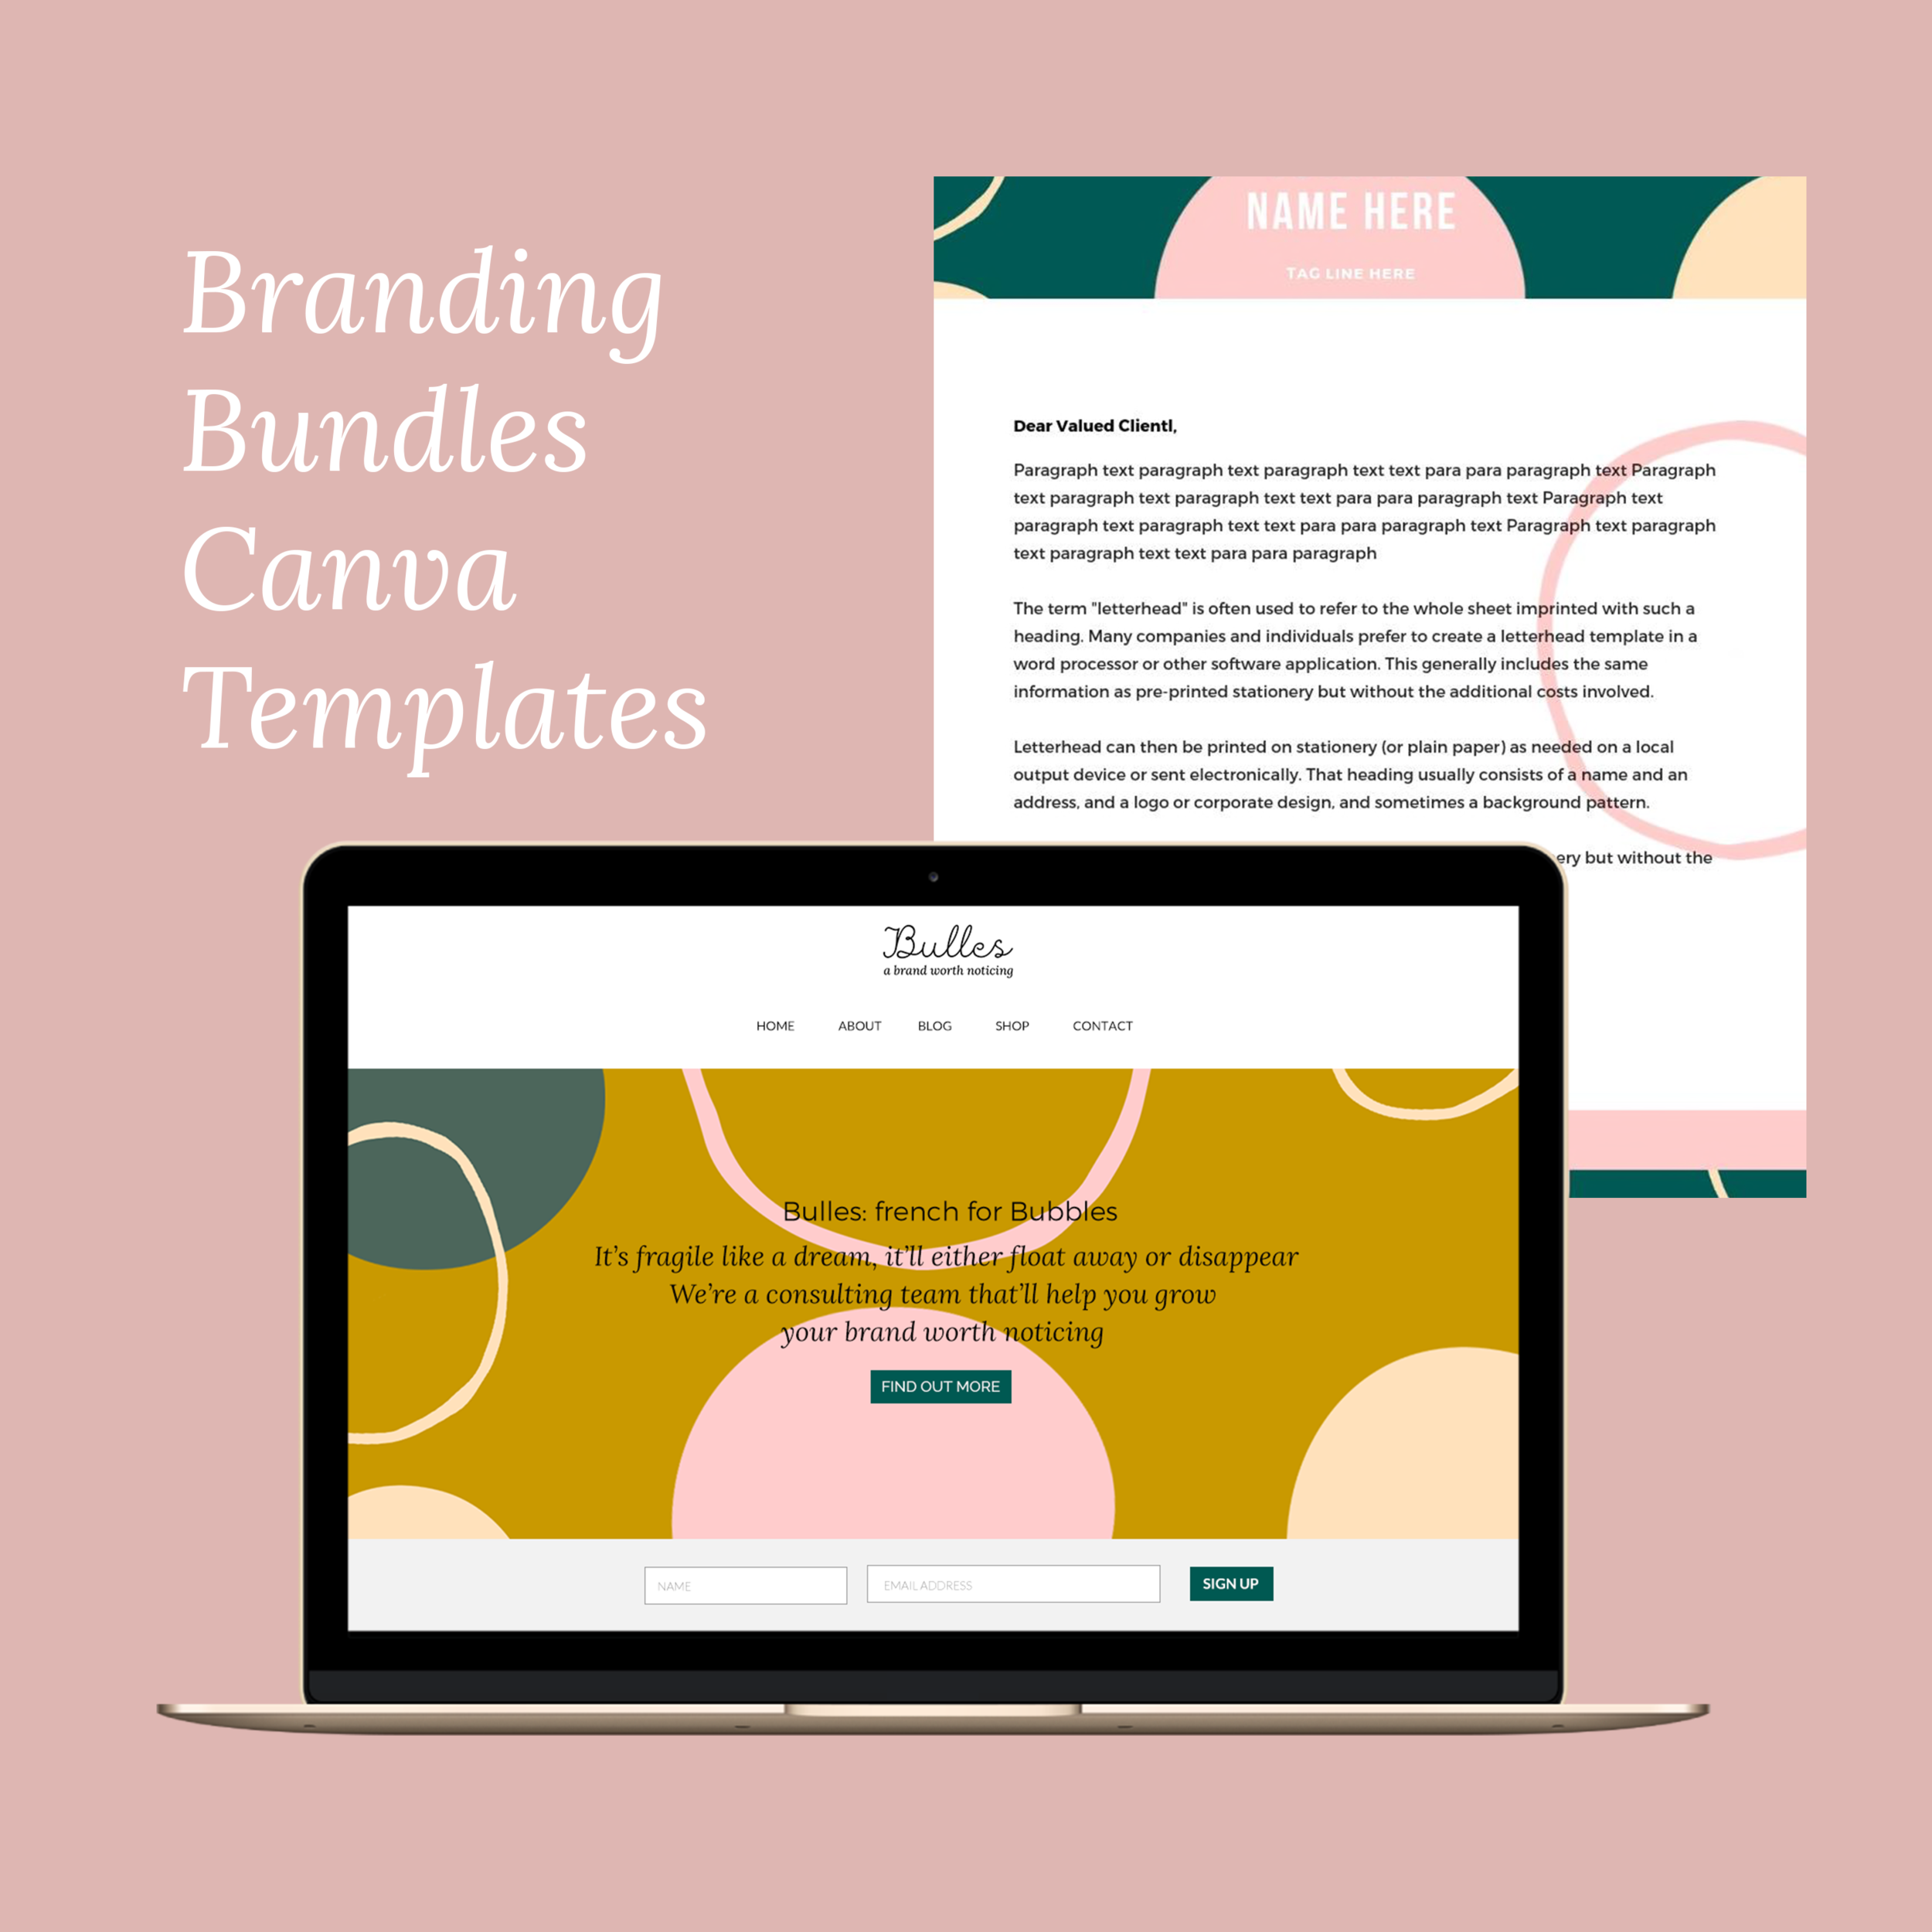 kellie and co bloom collective branding canva templates